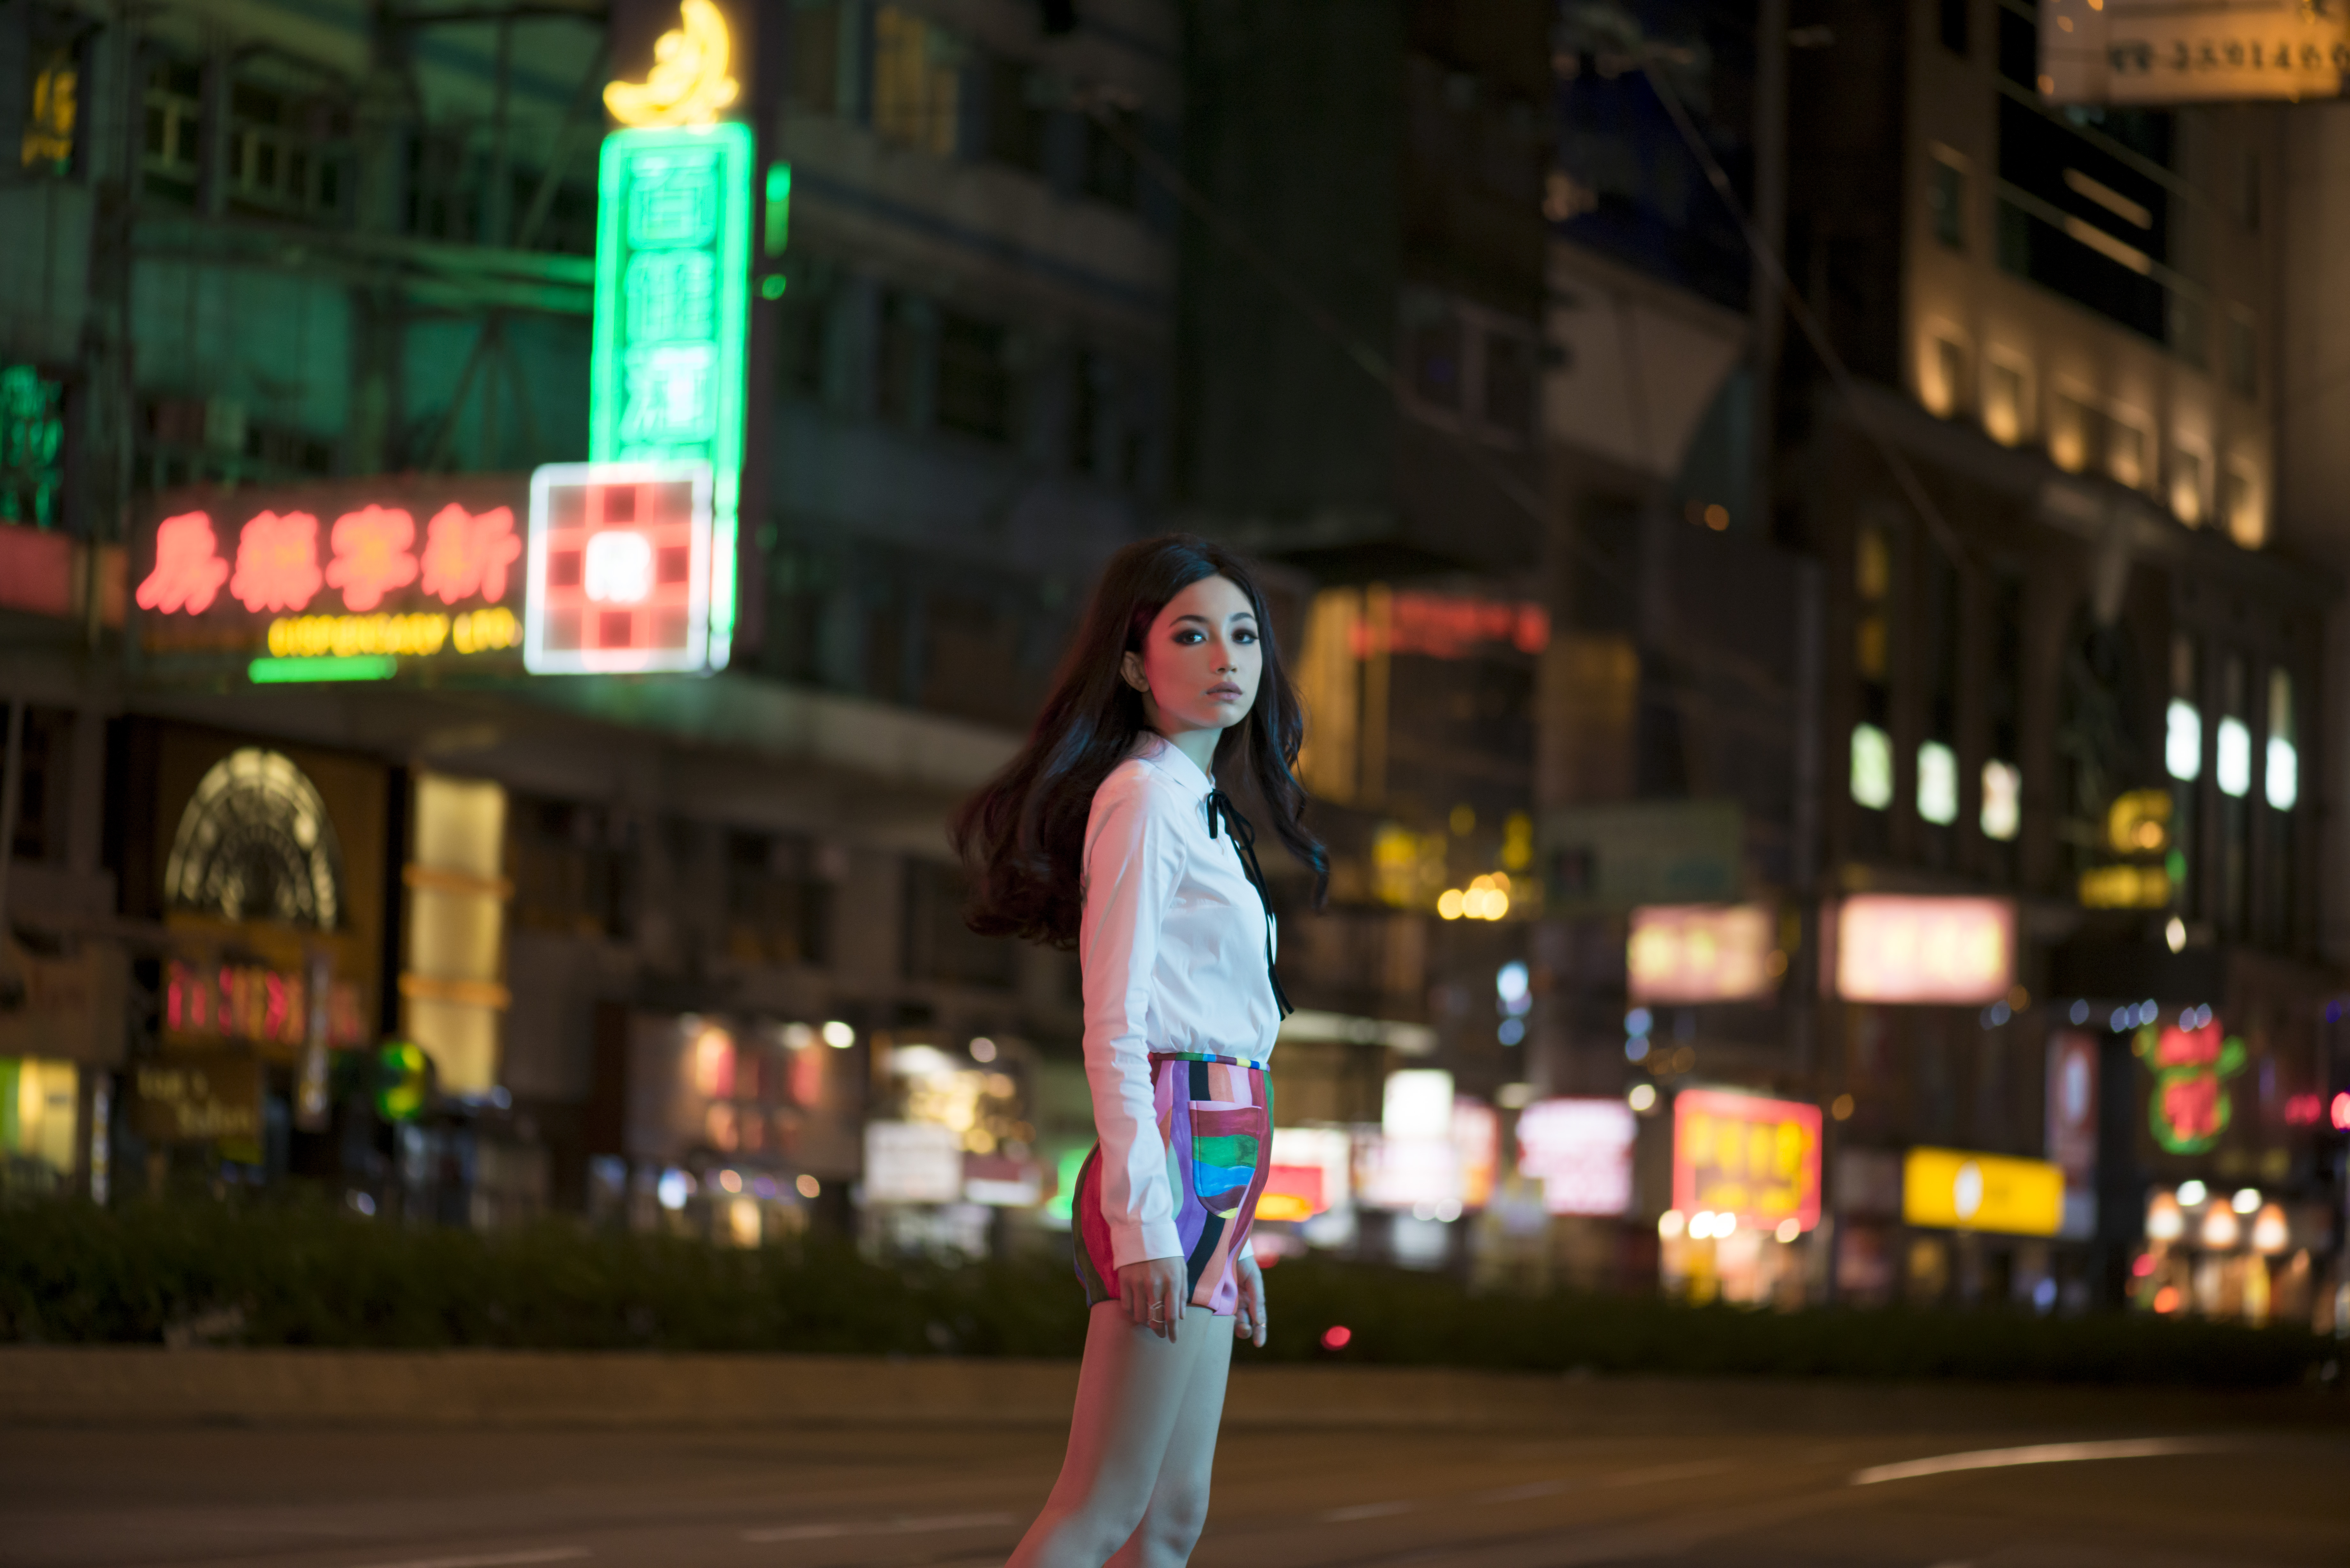 Hong Kong singer Tien Chong was named one of Apple's New Artist Spotlights from China